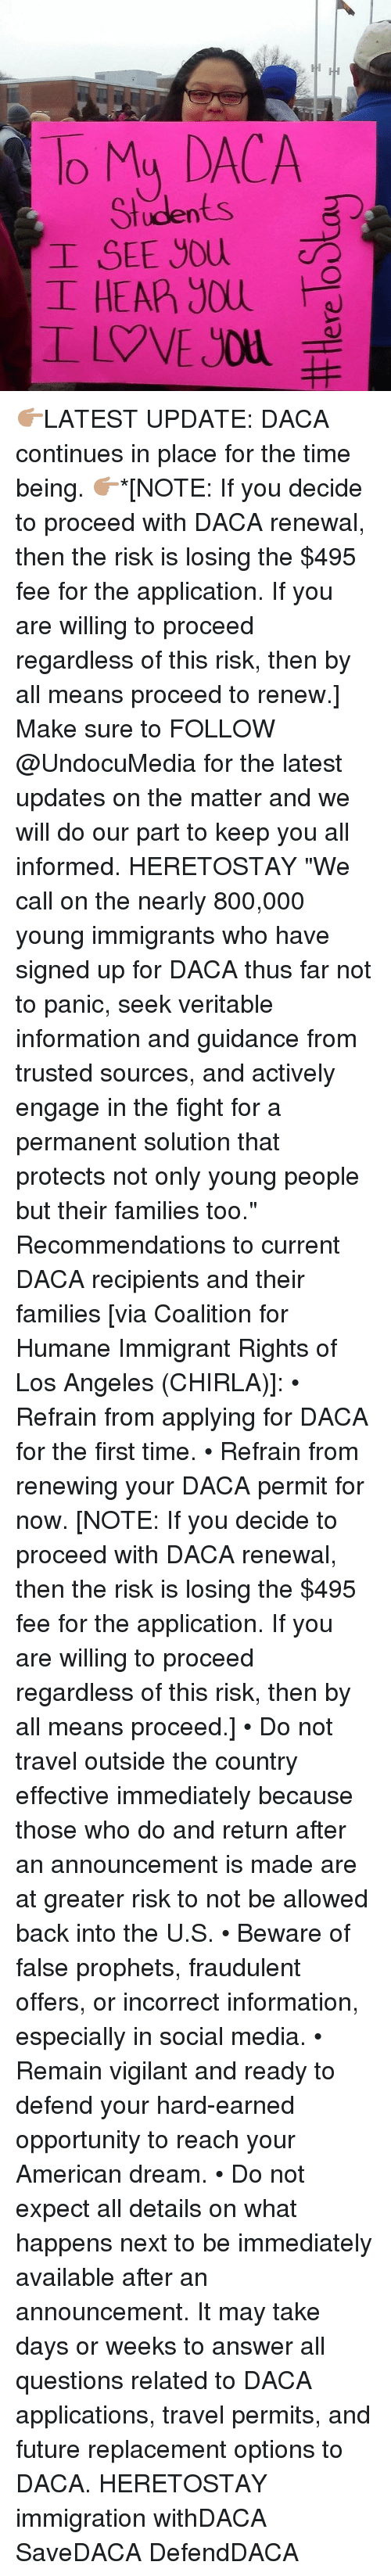 "Memes, Los Angeles, and American Dream: To My DACA  Students  I SEE you  I HEAP) you 👉🏽LATEST UPDATE: DACA continues in place for the time being. 👉🏽*[NOTE: If you decide to proceed with DACA renewal, then the risk is losing the $495 fee for the application. If you are willing to proceed regardless of this risk, then by all means proceed to renew.] Make sure to FOLLOW @UndocuMedia for the latest updates on the matter and we will do our part to keep you all informed. HERETOSTAY ""We call on the nearly 800,000 young immigrants who have signed up for DACA thus far not to panic, seek veritable information and guidance from trusted sources, and actively engage in the fight for a permanent solution that protects not only young people but their families too."" Recommendations to current DACA recipients and their families [via Coalition for Humane Immigrant Rights of Los Angeles (CHIRLA)]: • Refrain from applying for DACA for the first time. • Refrain from renewing your DACA permit for now. [NOTE: If you decide to proceed with DACA renewal, then the risk is losing the $495 fee for the application. If you are willing to proceed regardless of this risk, then by all means proceed.] • Do not travel outside the country effective immediately because those who do and return after an announcement is made are at greater risk to not be allowed back into the U.S. • Beware of false prophets, fraudulent offers, or incorrect information, especially in social media. • Remain vigilant and ready to defend your hard-earned opportunity to reach your American dream. • Do not expect all details on what happens next to be immediately available after an announcement. It may take days or weeks to answer all questions related to DACA applications, travel permits, and future replacement options to DACA. HERETOSTAY immigration withDACA SaveDACA DefendDACA"